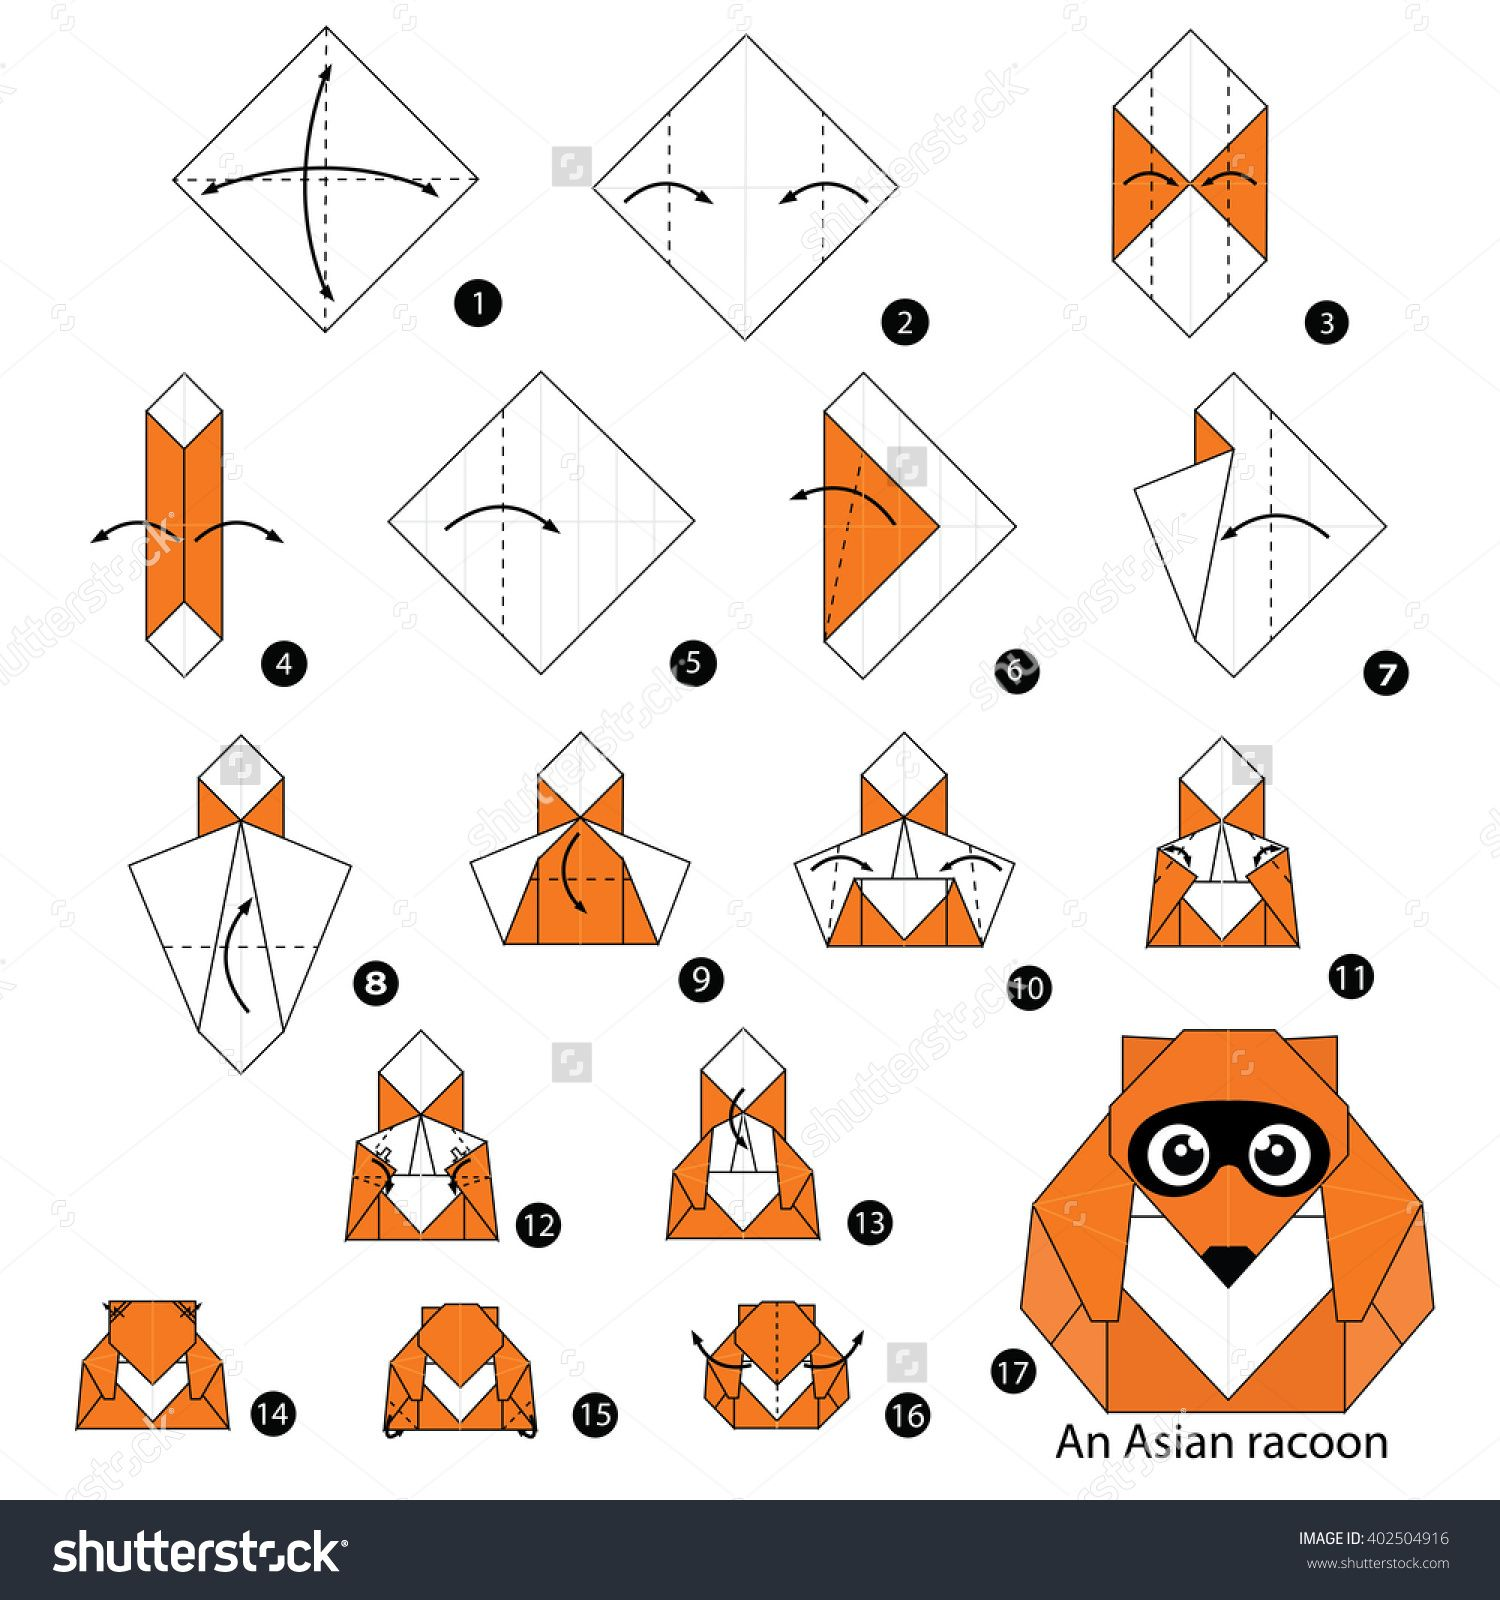 step by step instructions how to make origami an asian raccoon